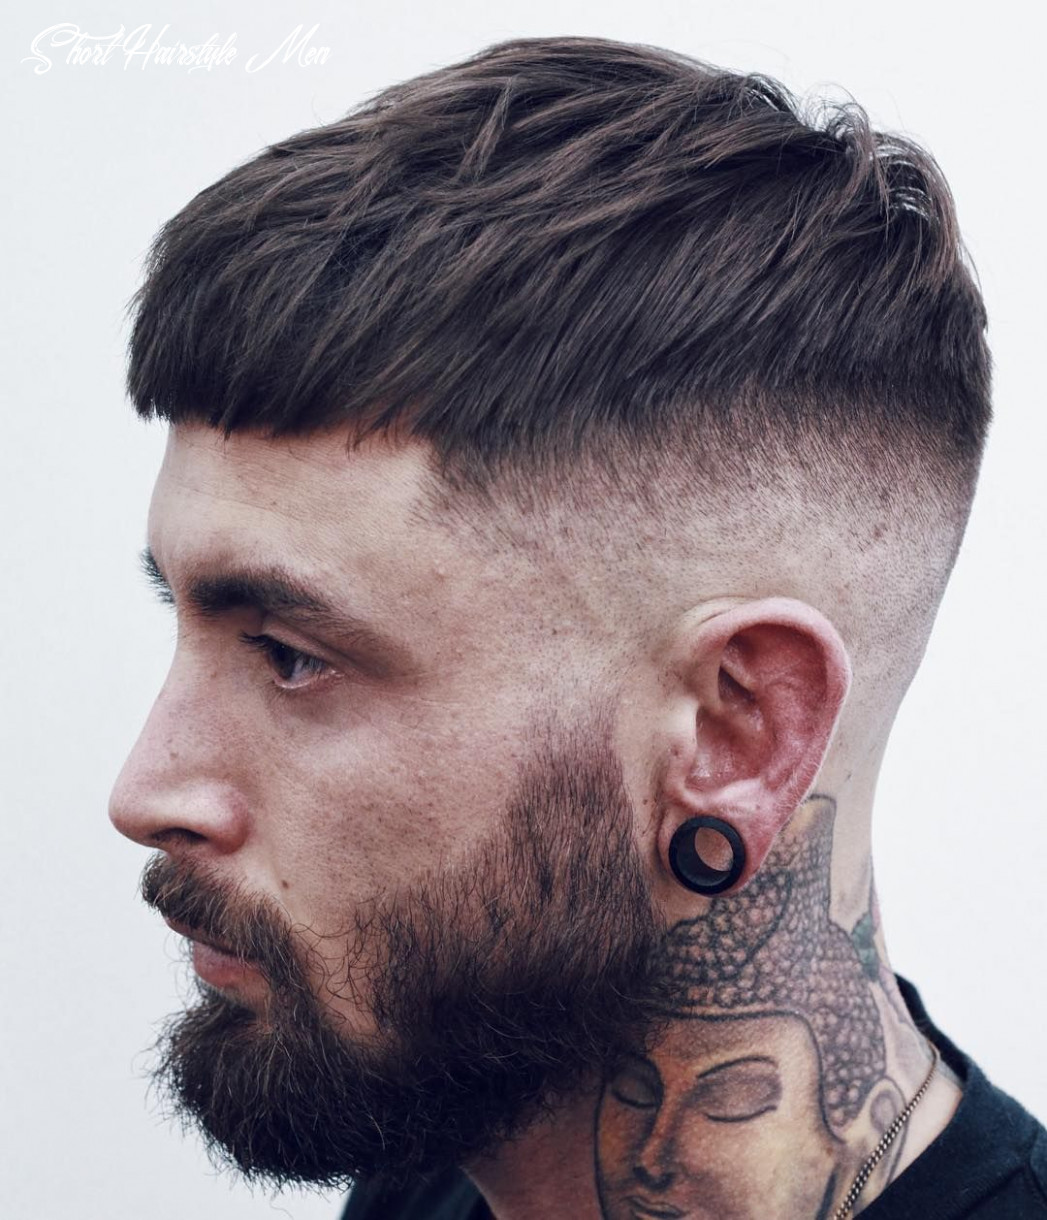 10 cool short haircuts hairstyles for men (10 update